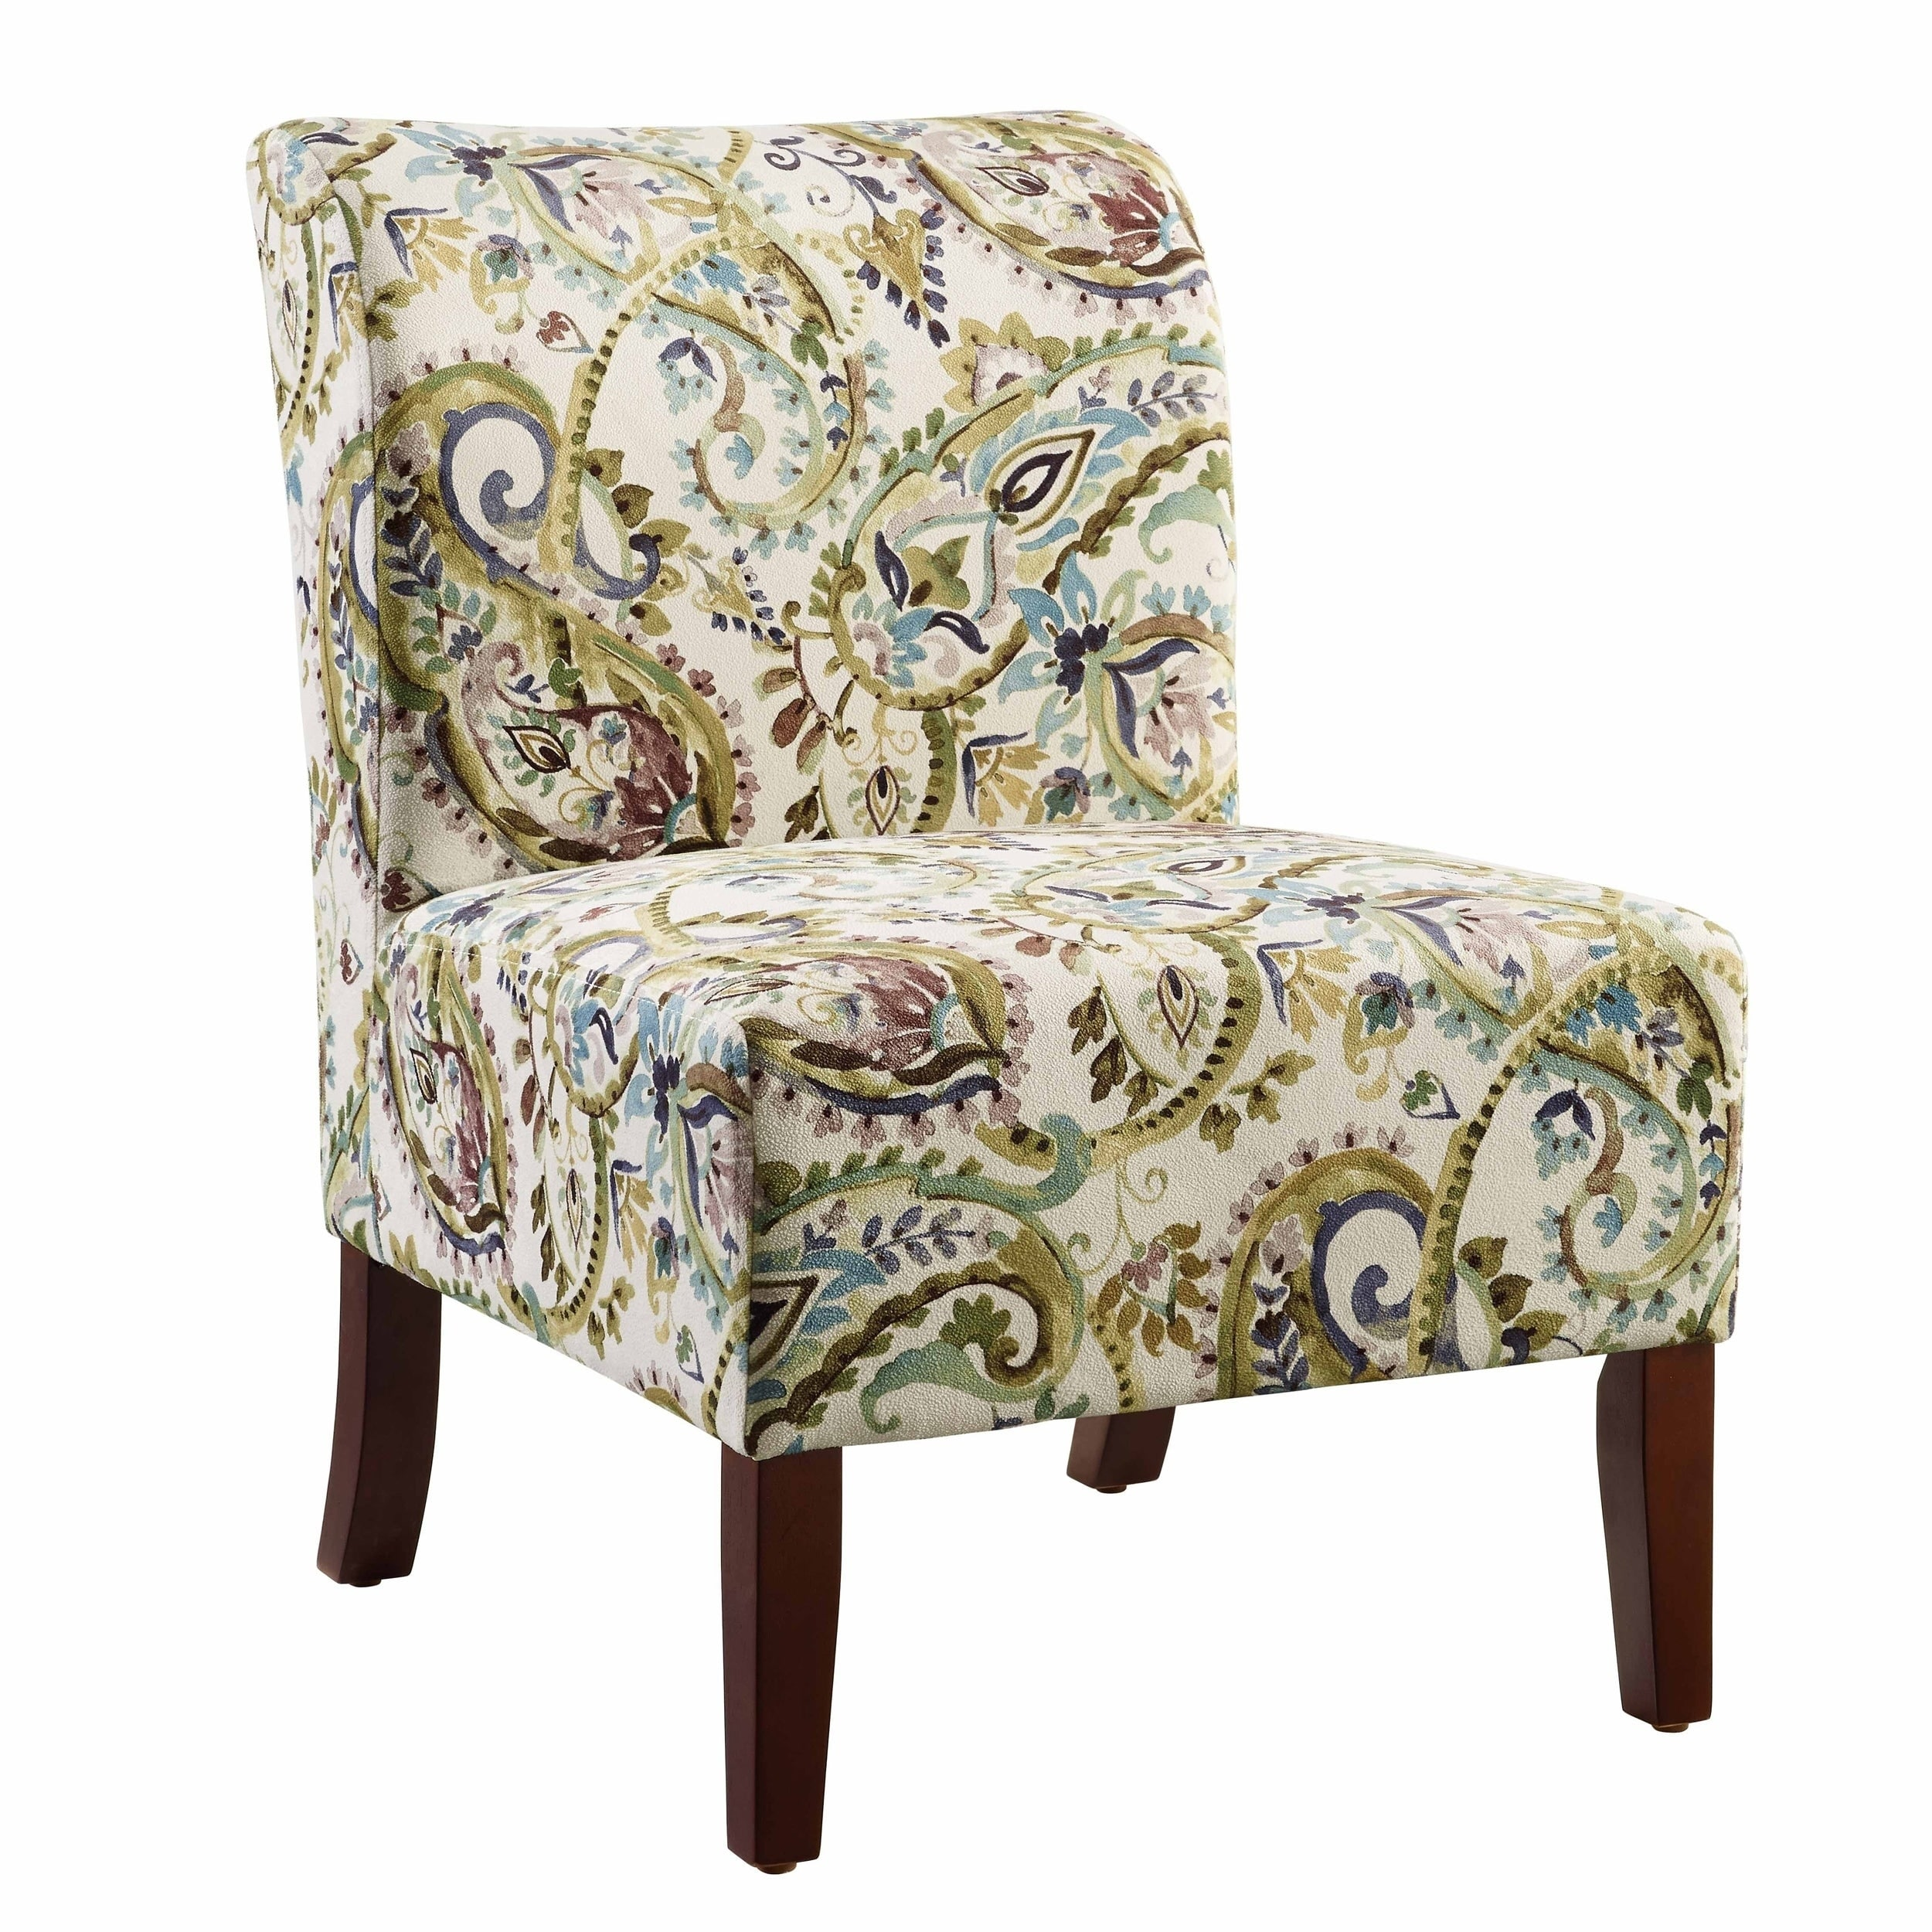 Buy paisley living room chairs online at overstock our best living room furniture deals